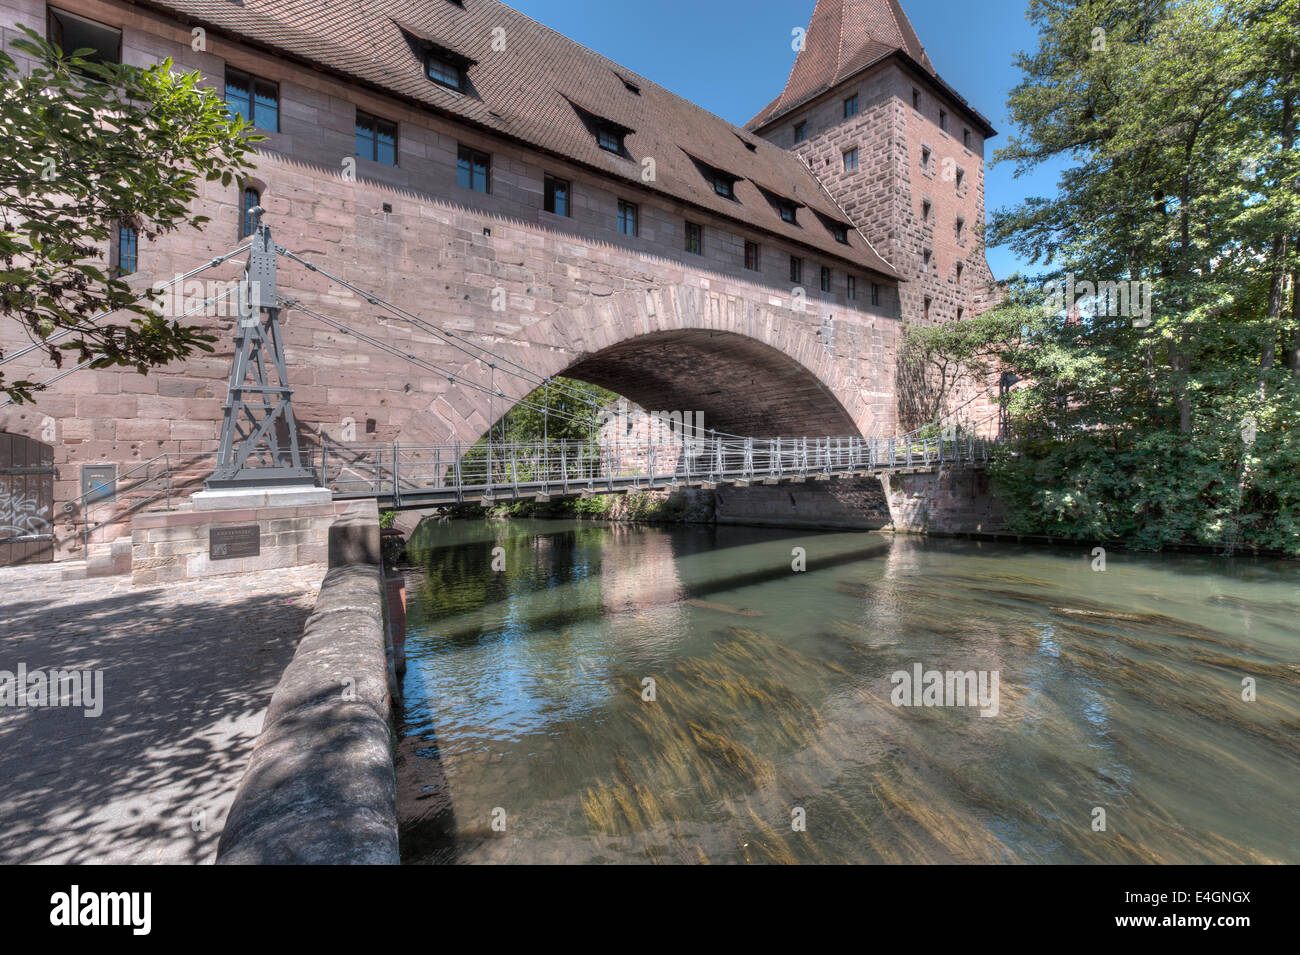 The River Pegnitz in Nuremberg, with the city wall, Schlayenturm and the Kettensteg (Chain Bridge) Stock Photo